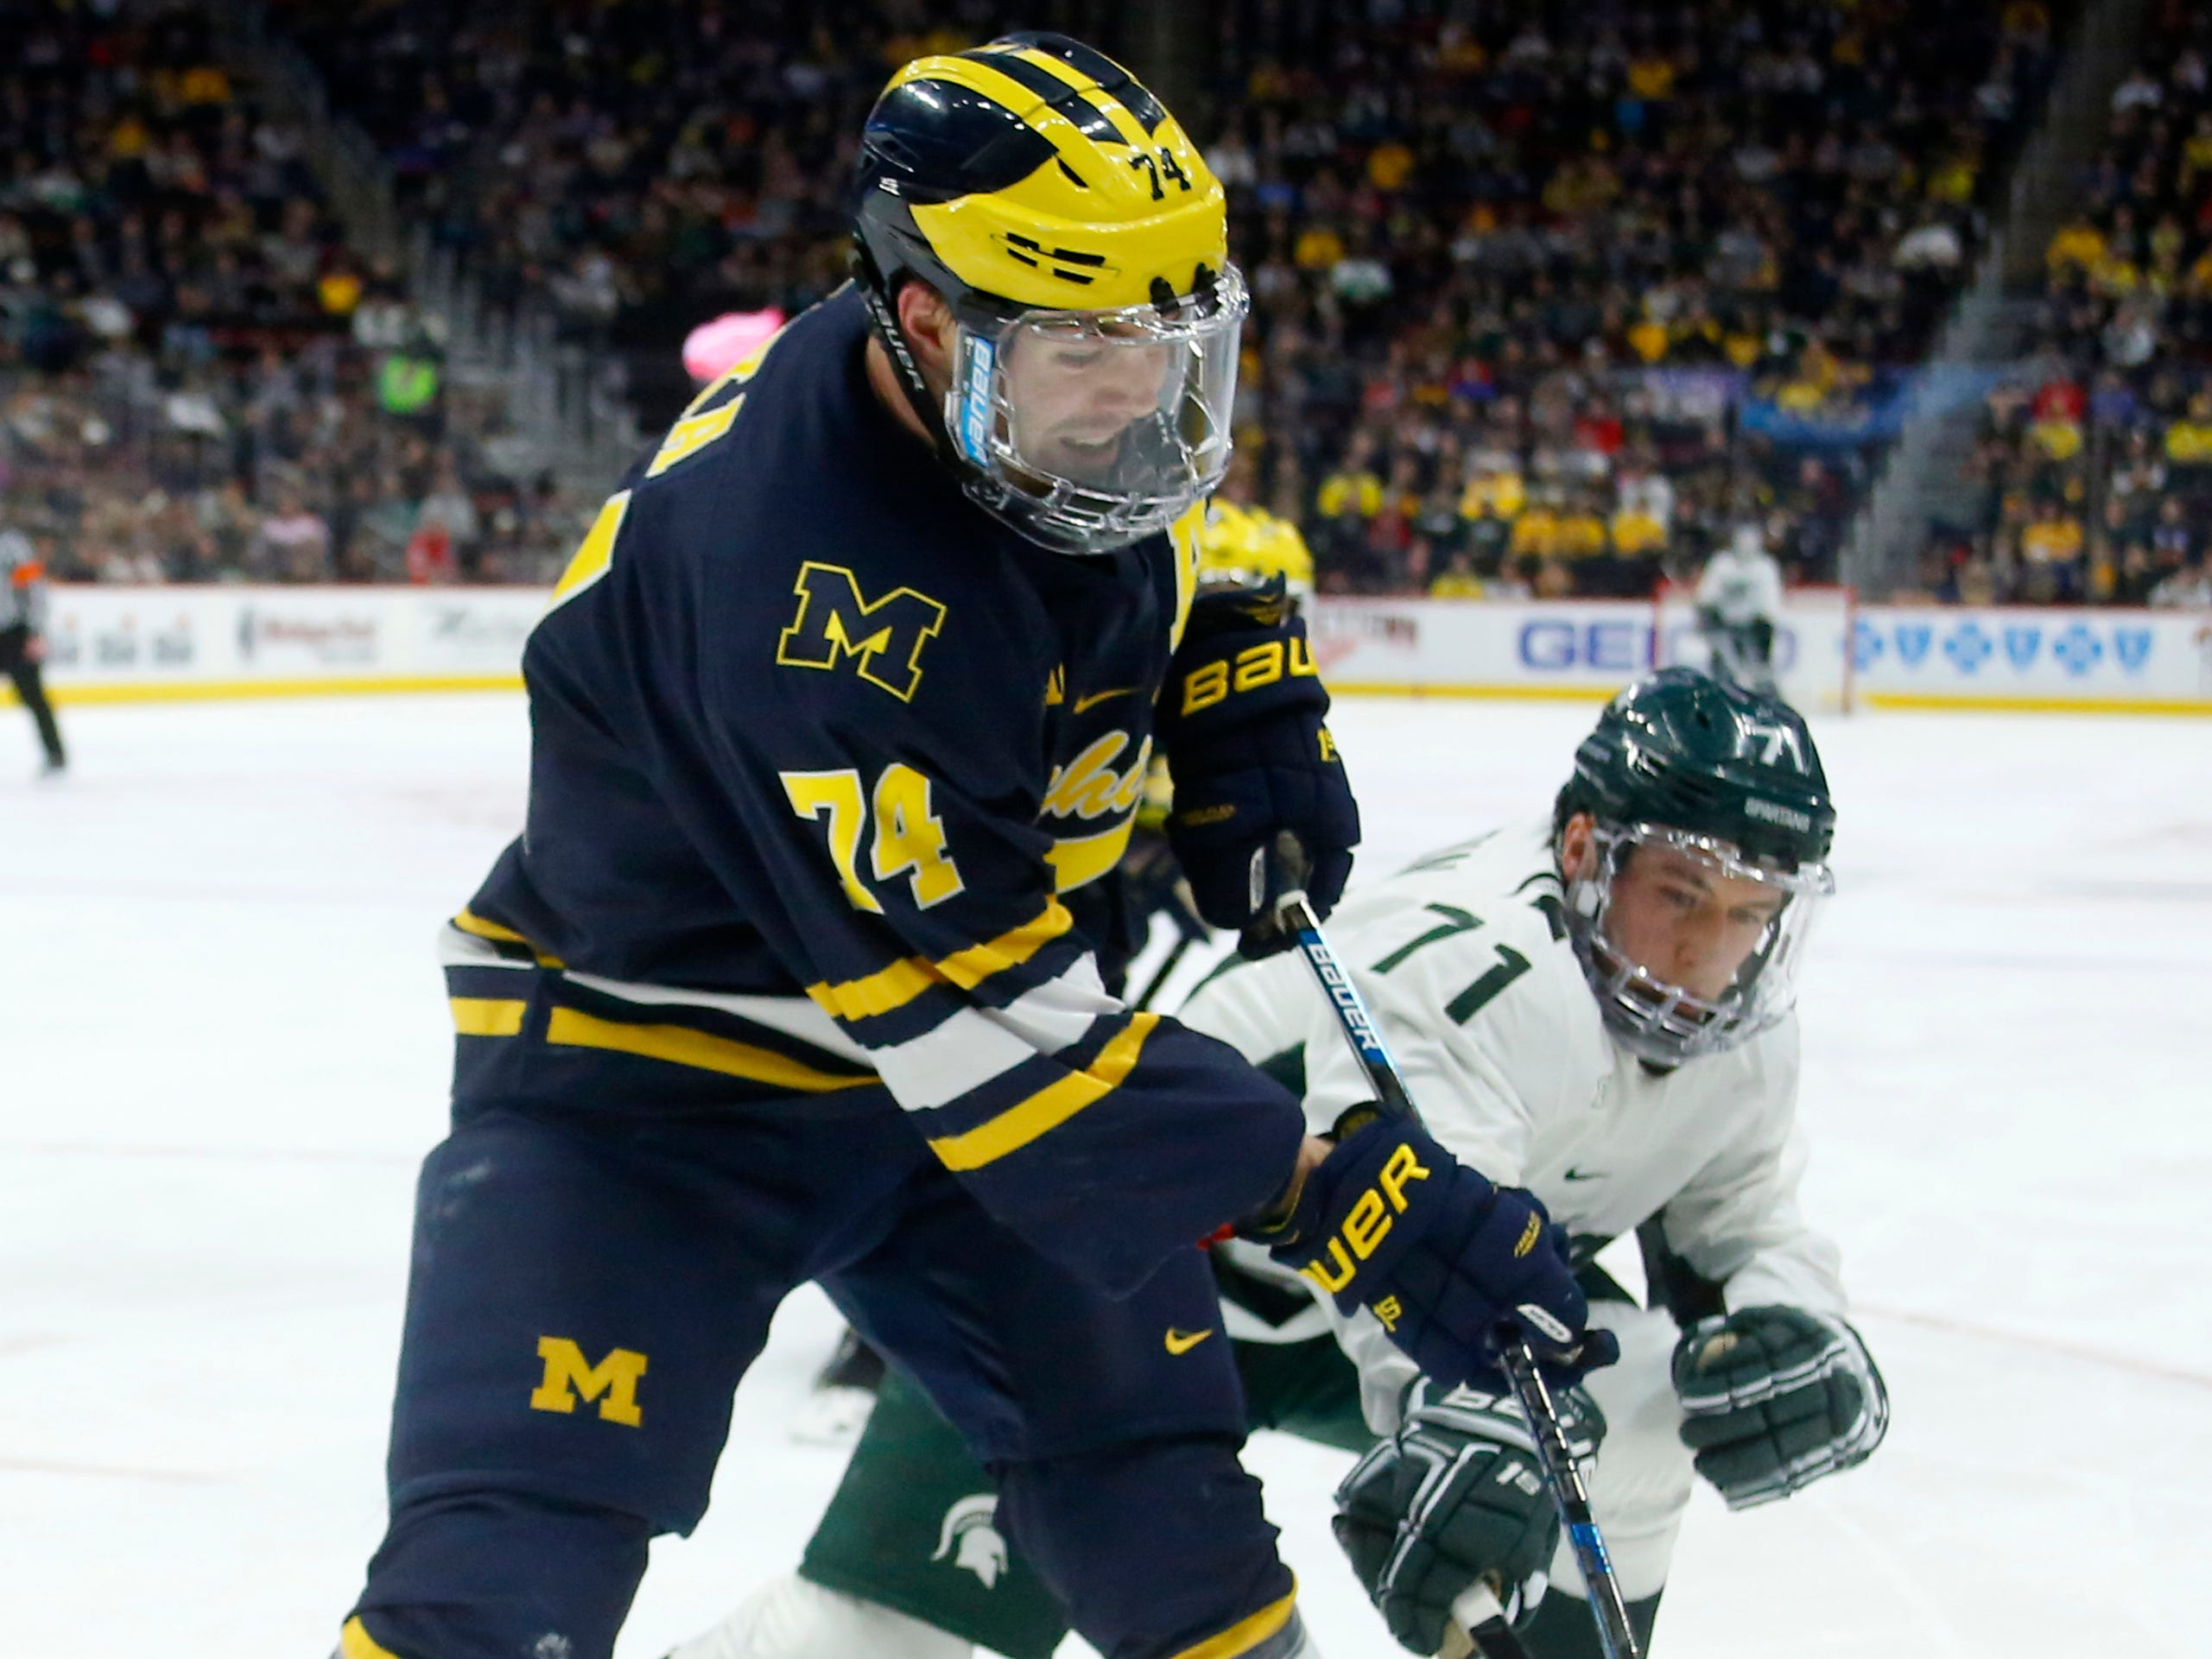 Michigan State forward Logan Lambdin tries to steal the puck from Michigan defenseman Nicholas Boka during the second period on Saturday, Feb. 9, 2019, at Little Caesars Arena.